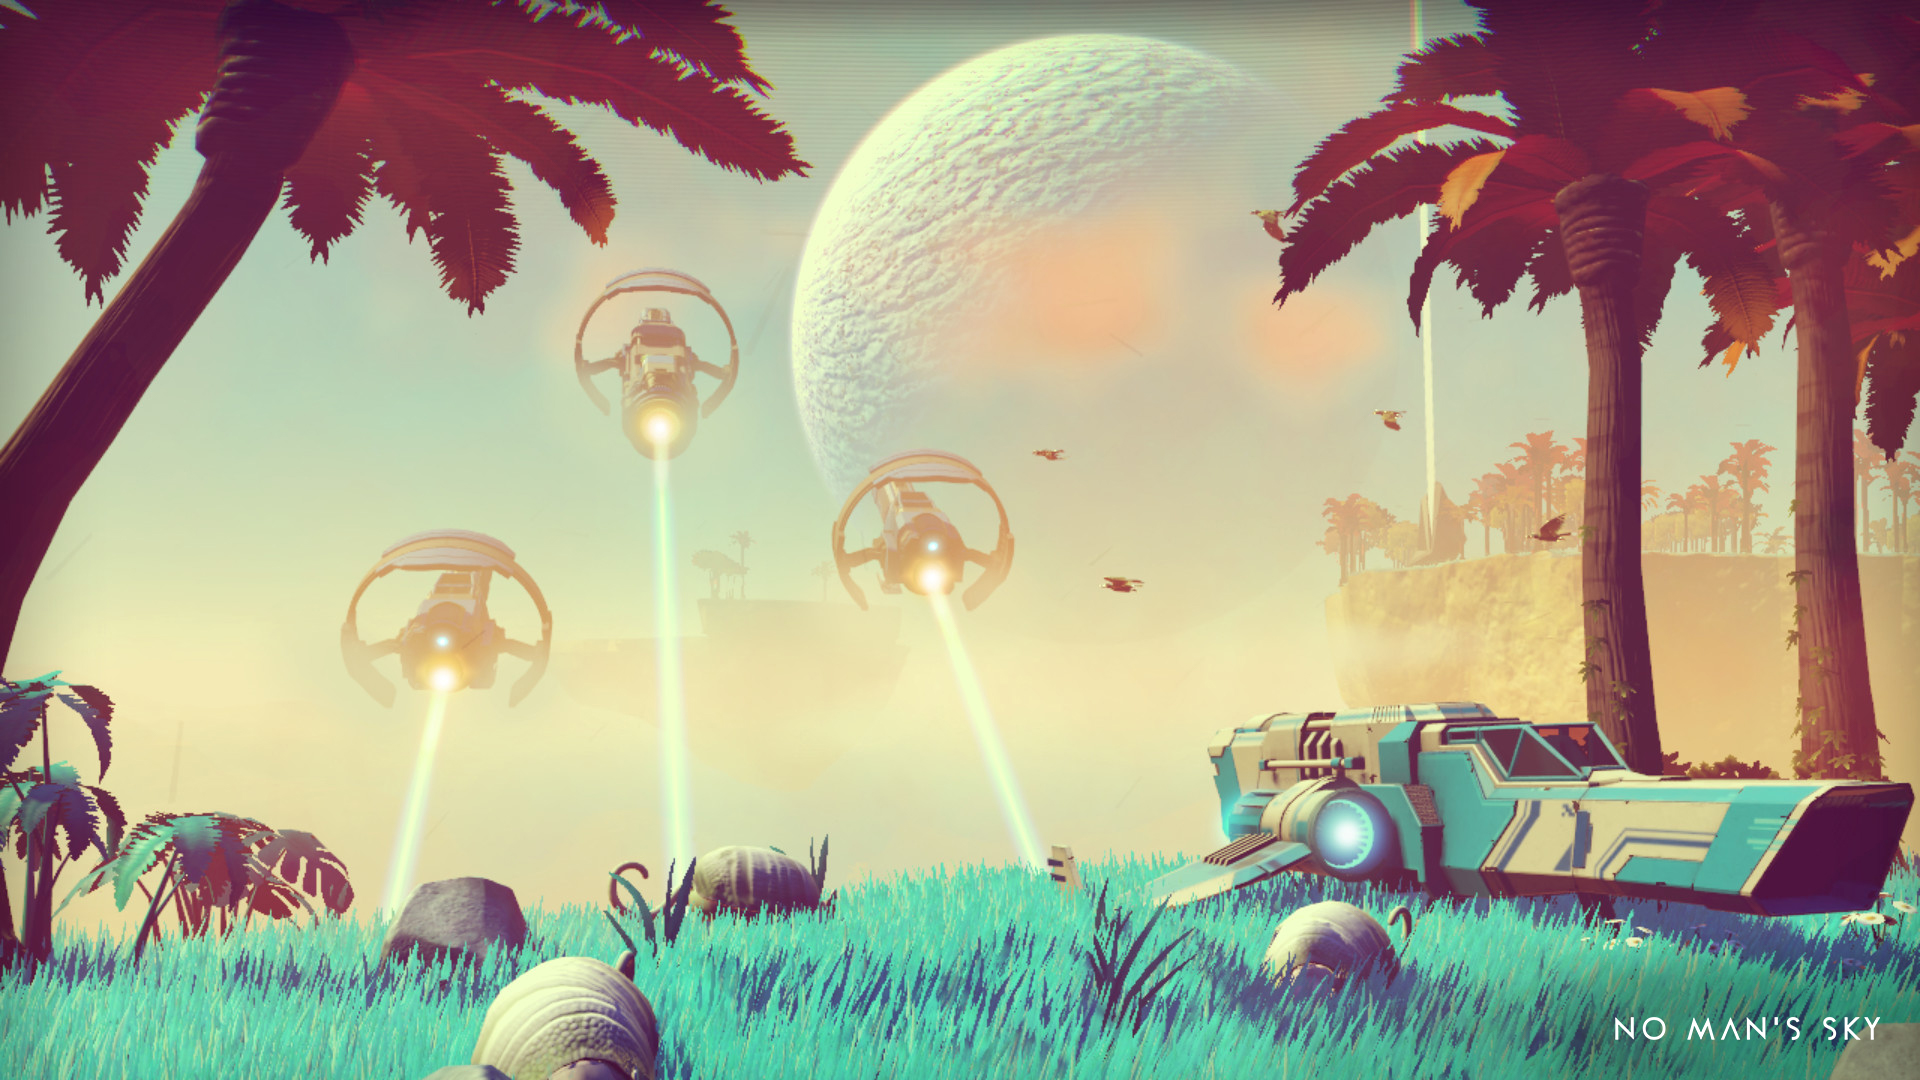 No Man's Sky primer: 8 essential tips for new players